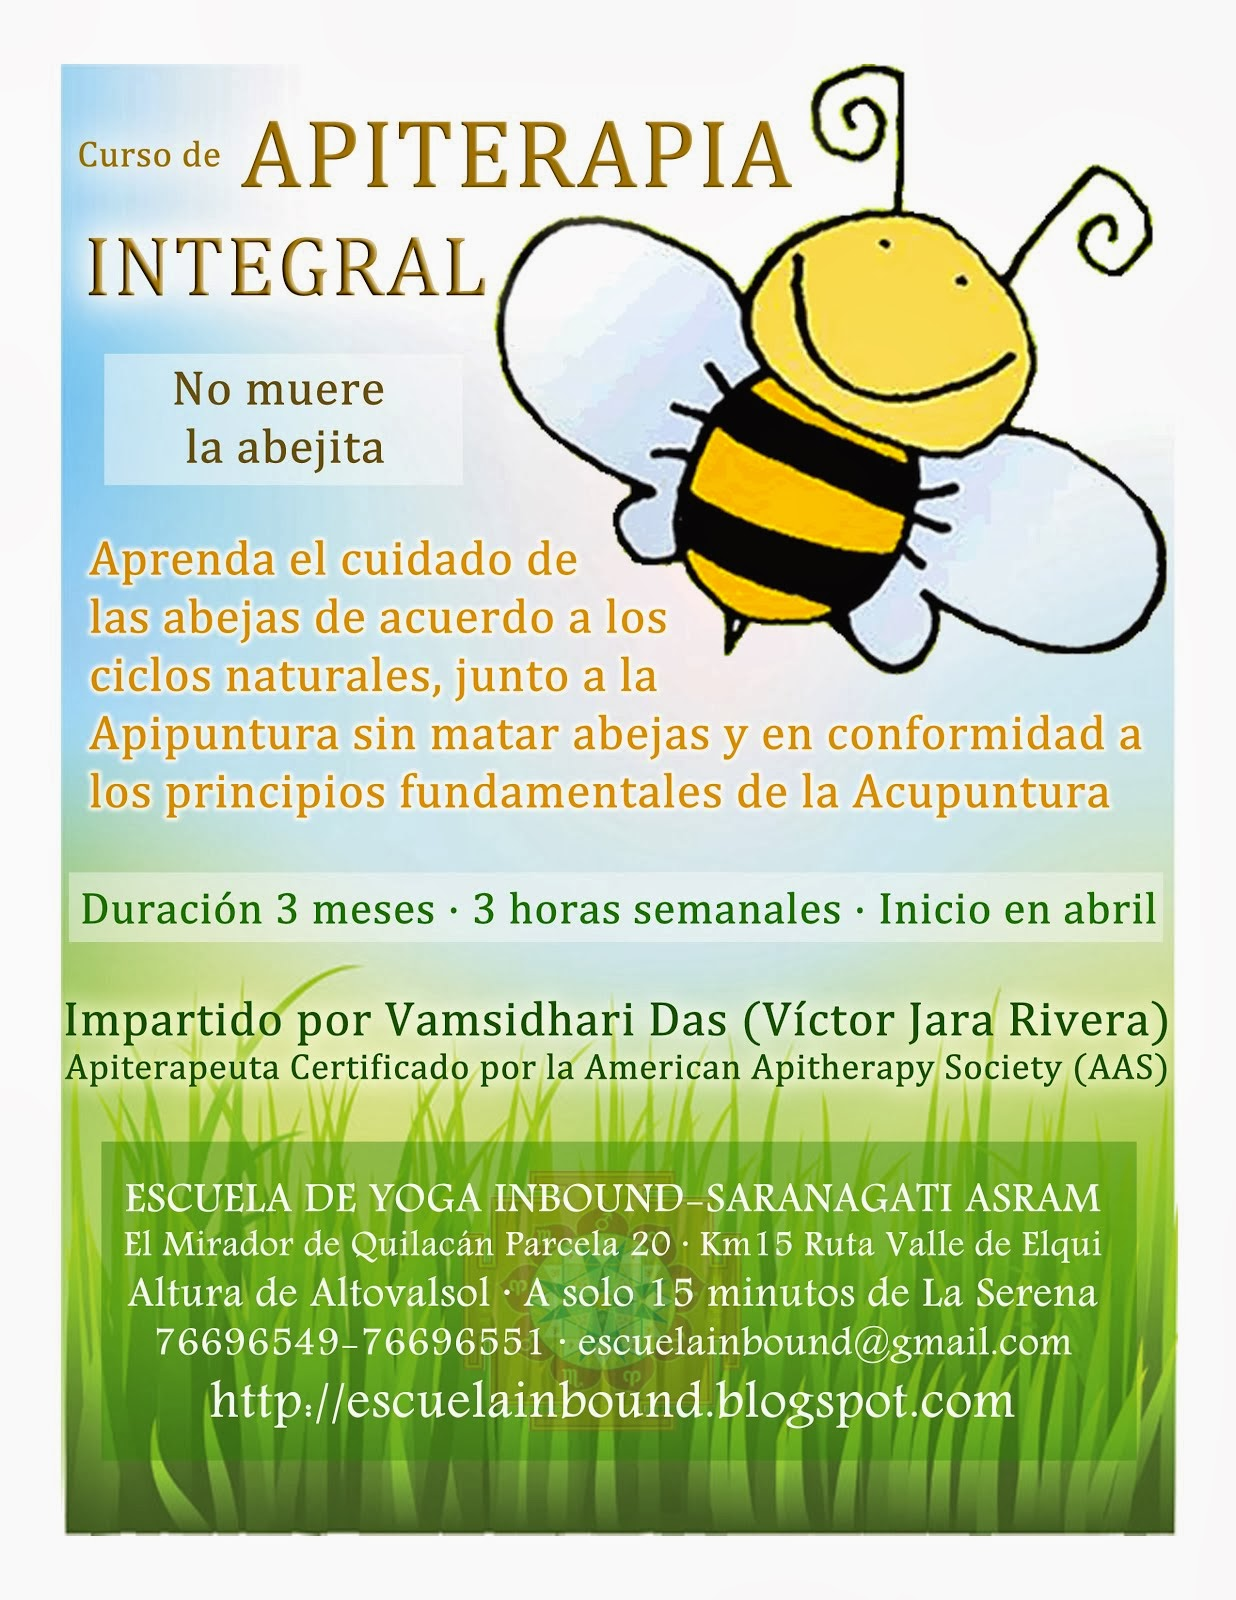 Curso de APITERAPIA INTEGRAL - Abril 2014